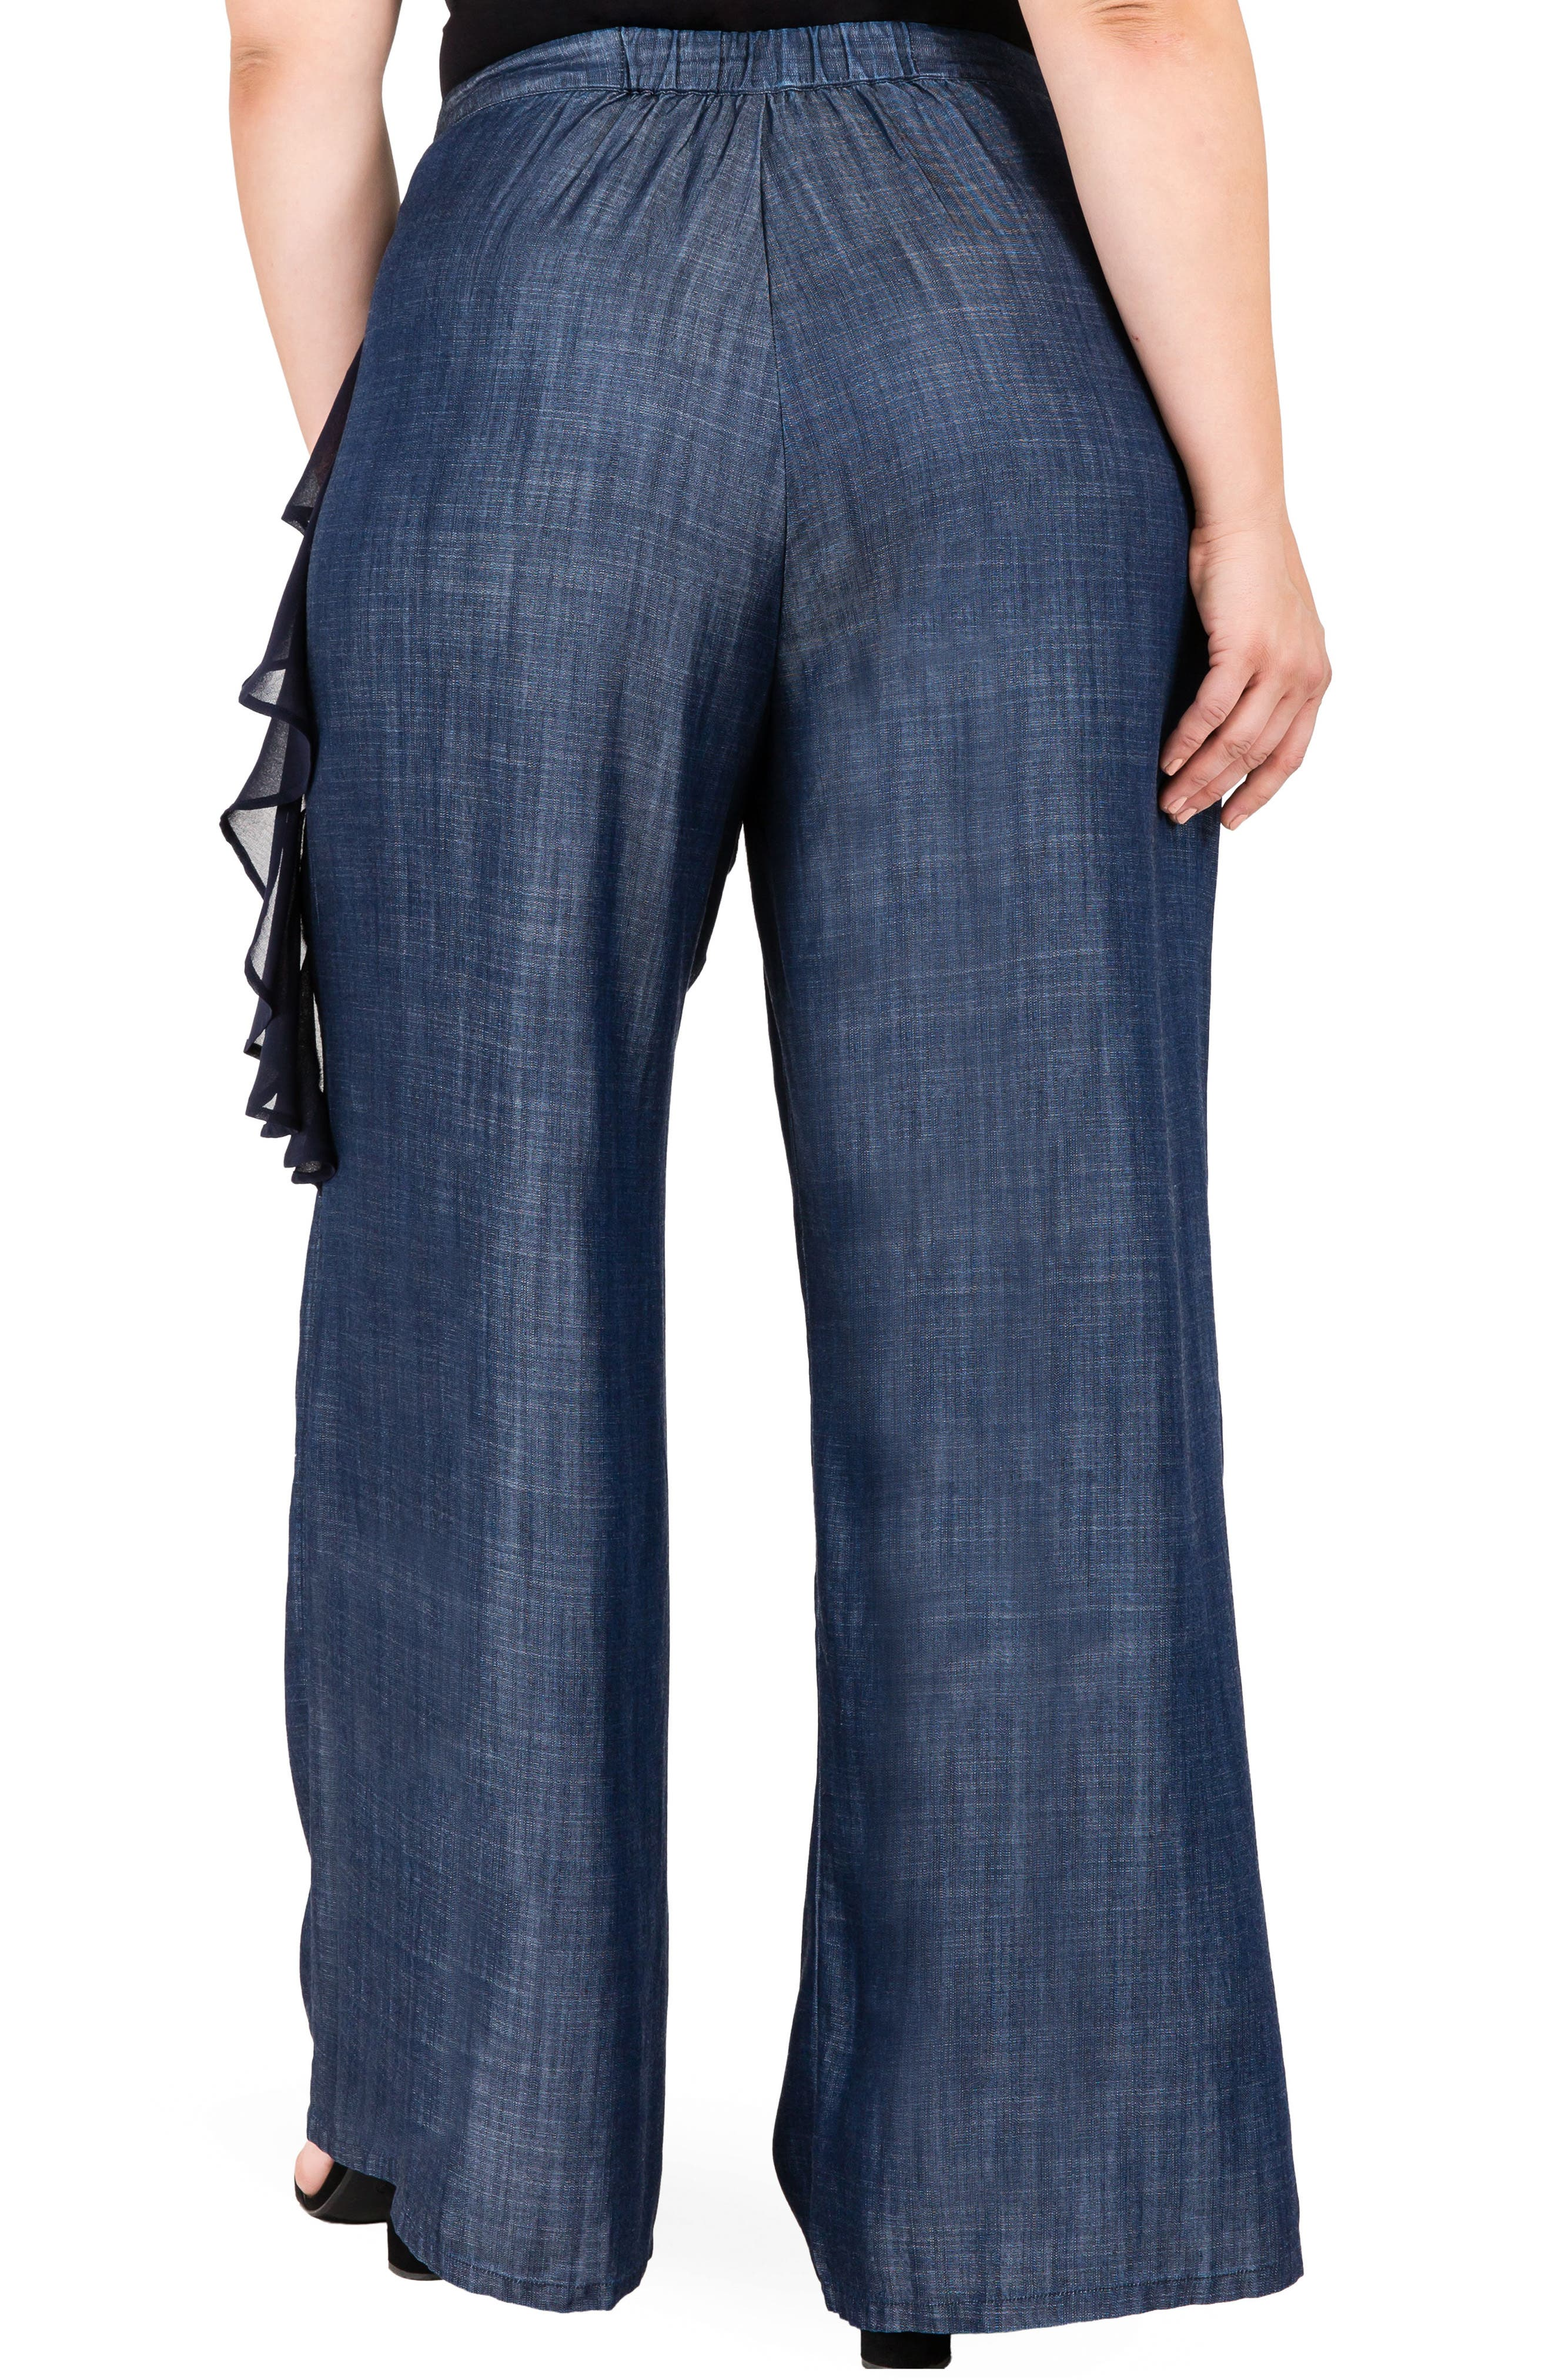 Olga Wide Leg Denim Pants,                             Alternate thumbnail 2, color,                             INDIGO